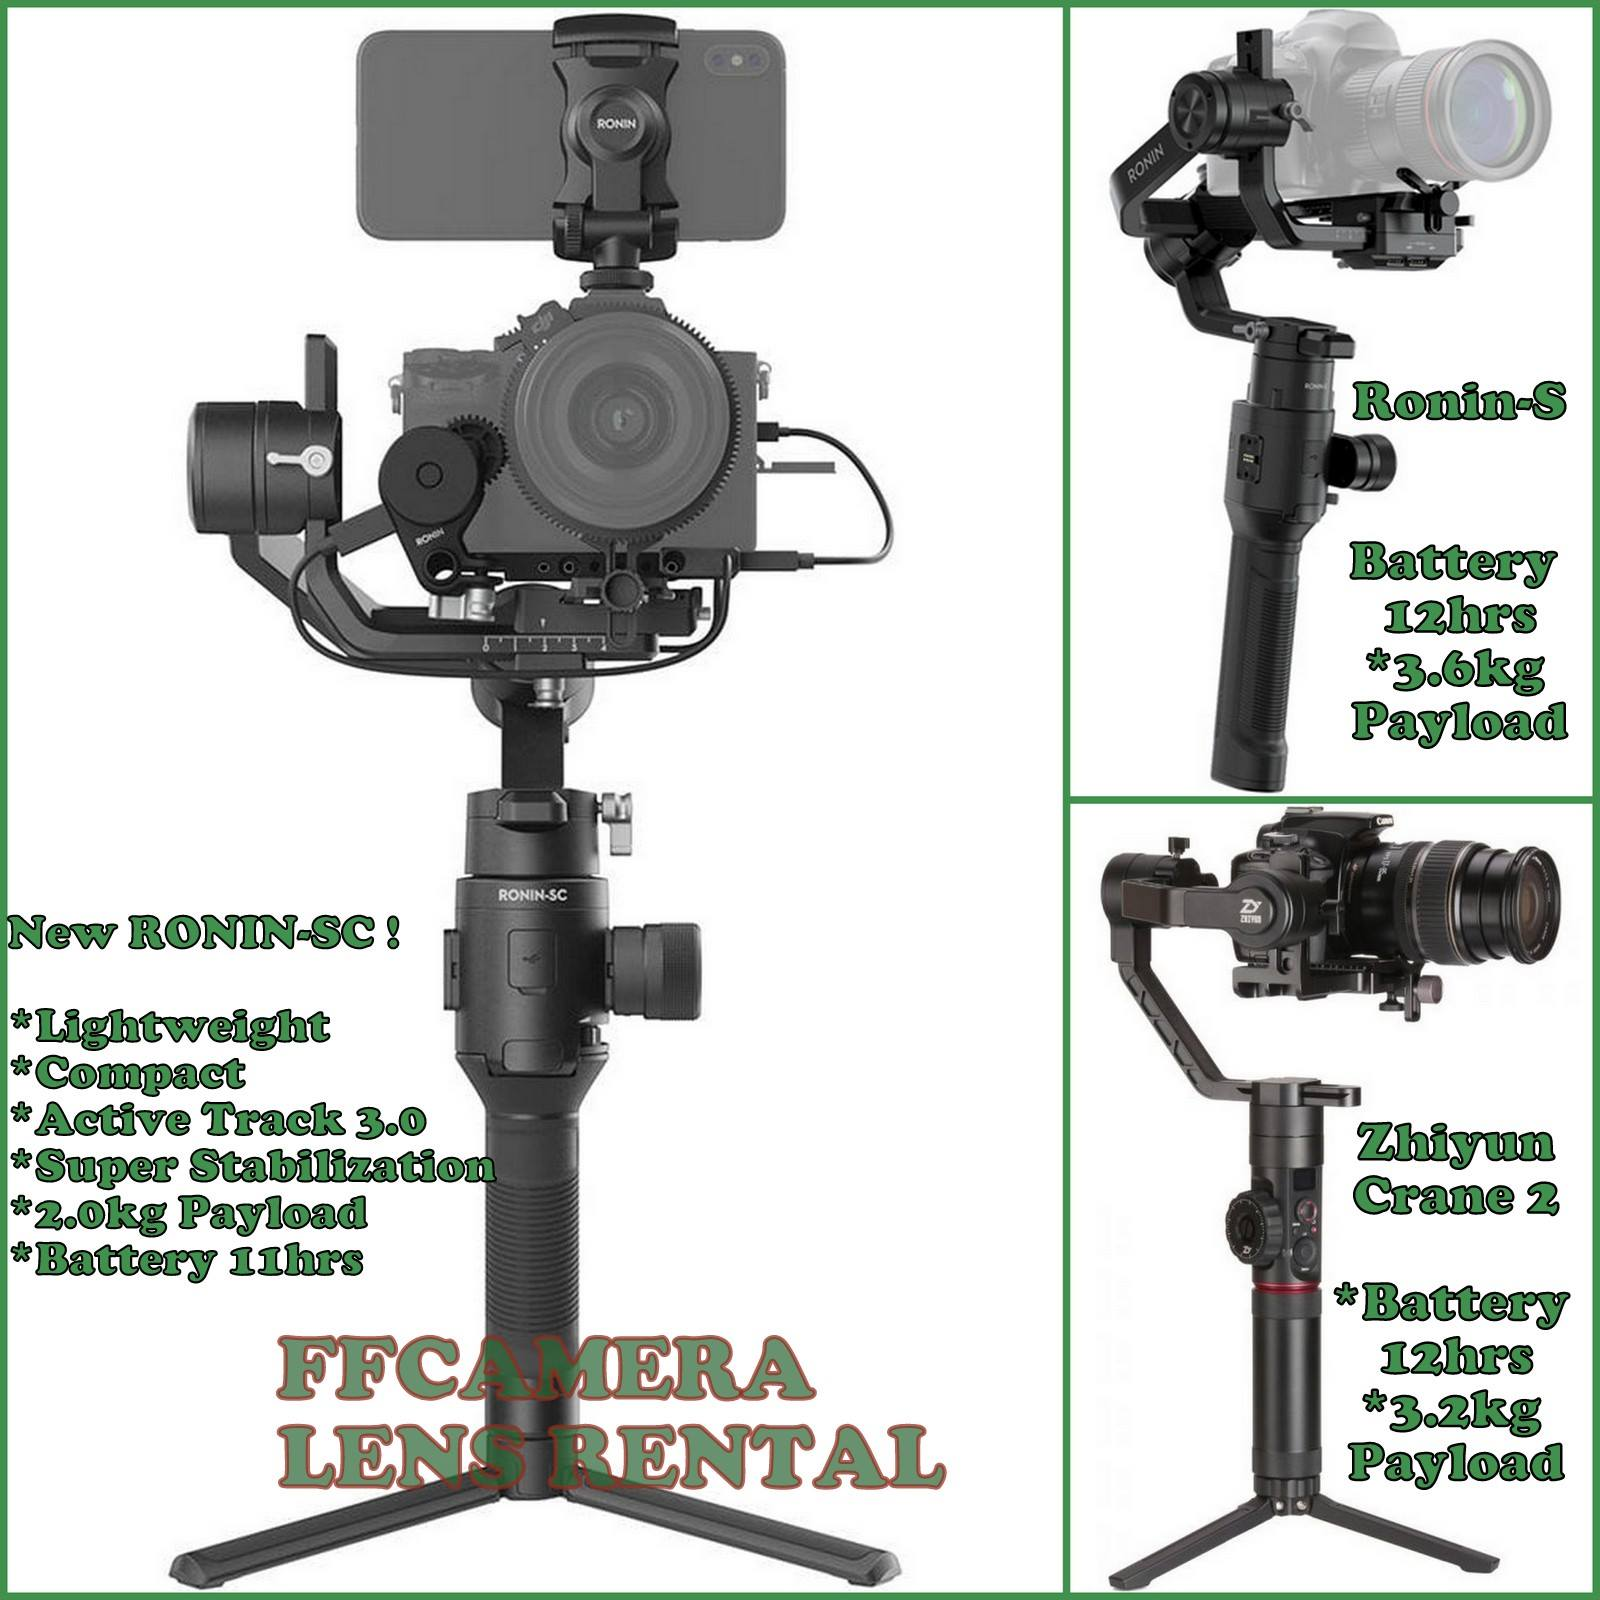 Camera Stabilizers Promotion!